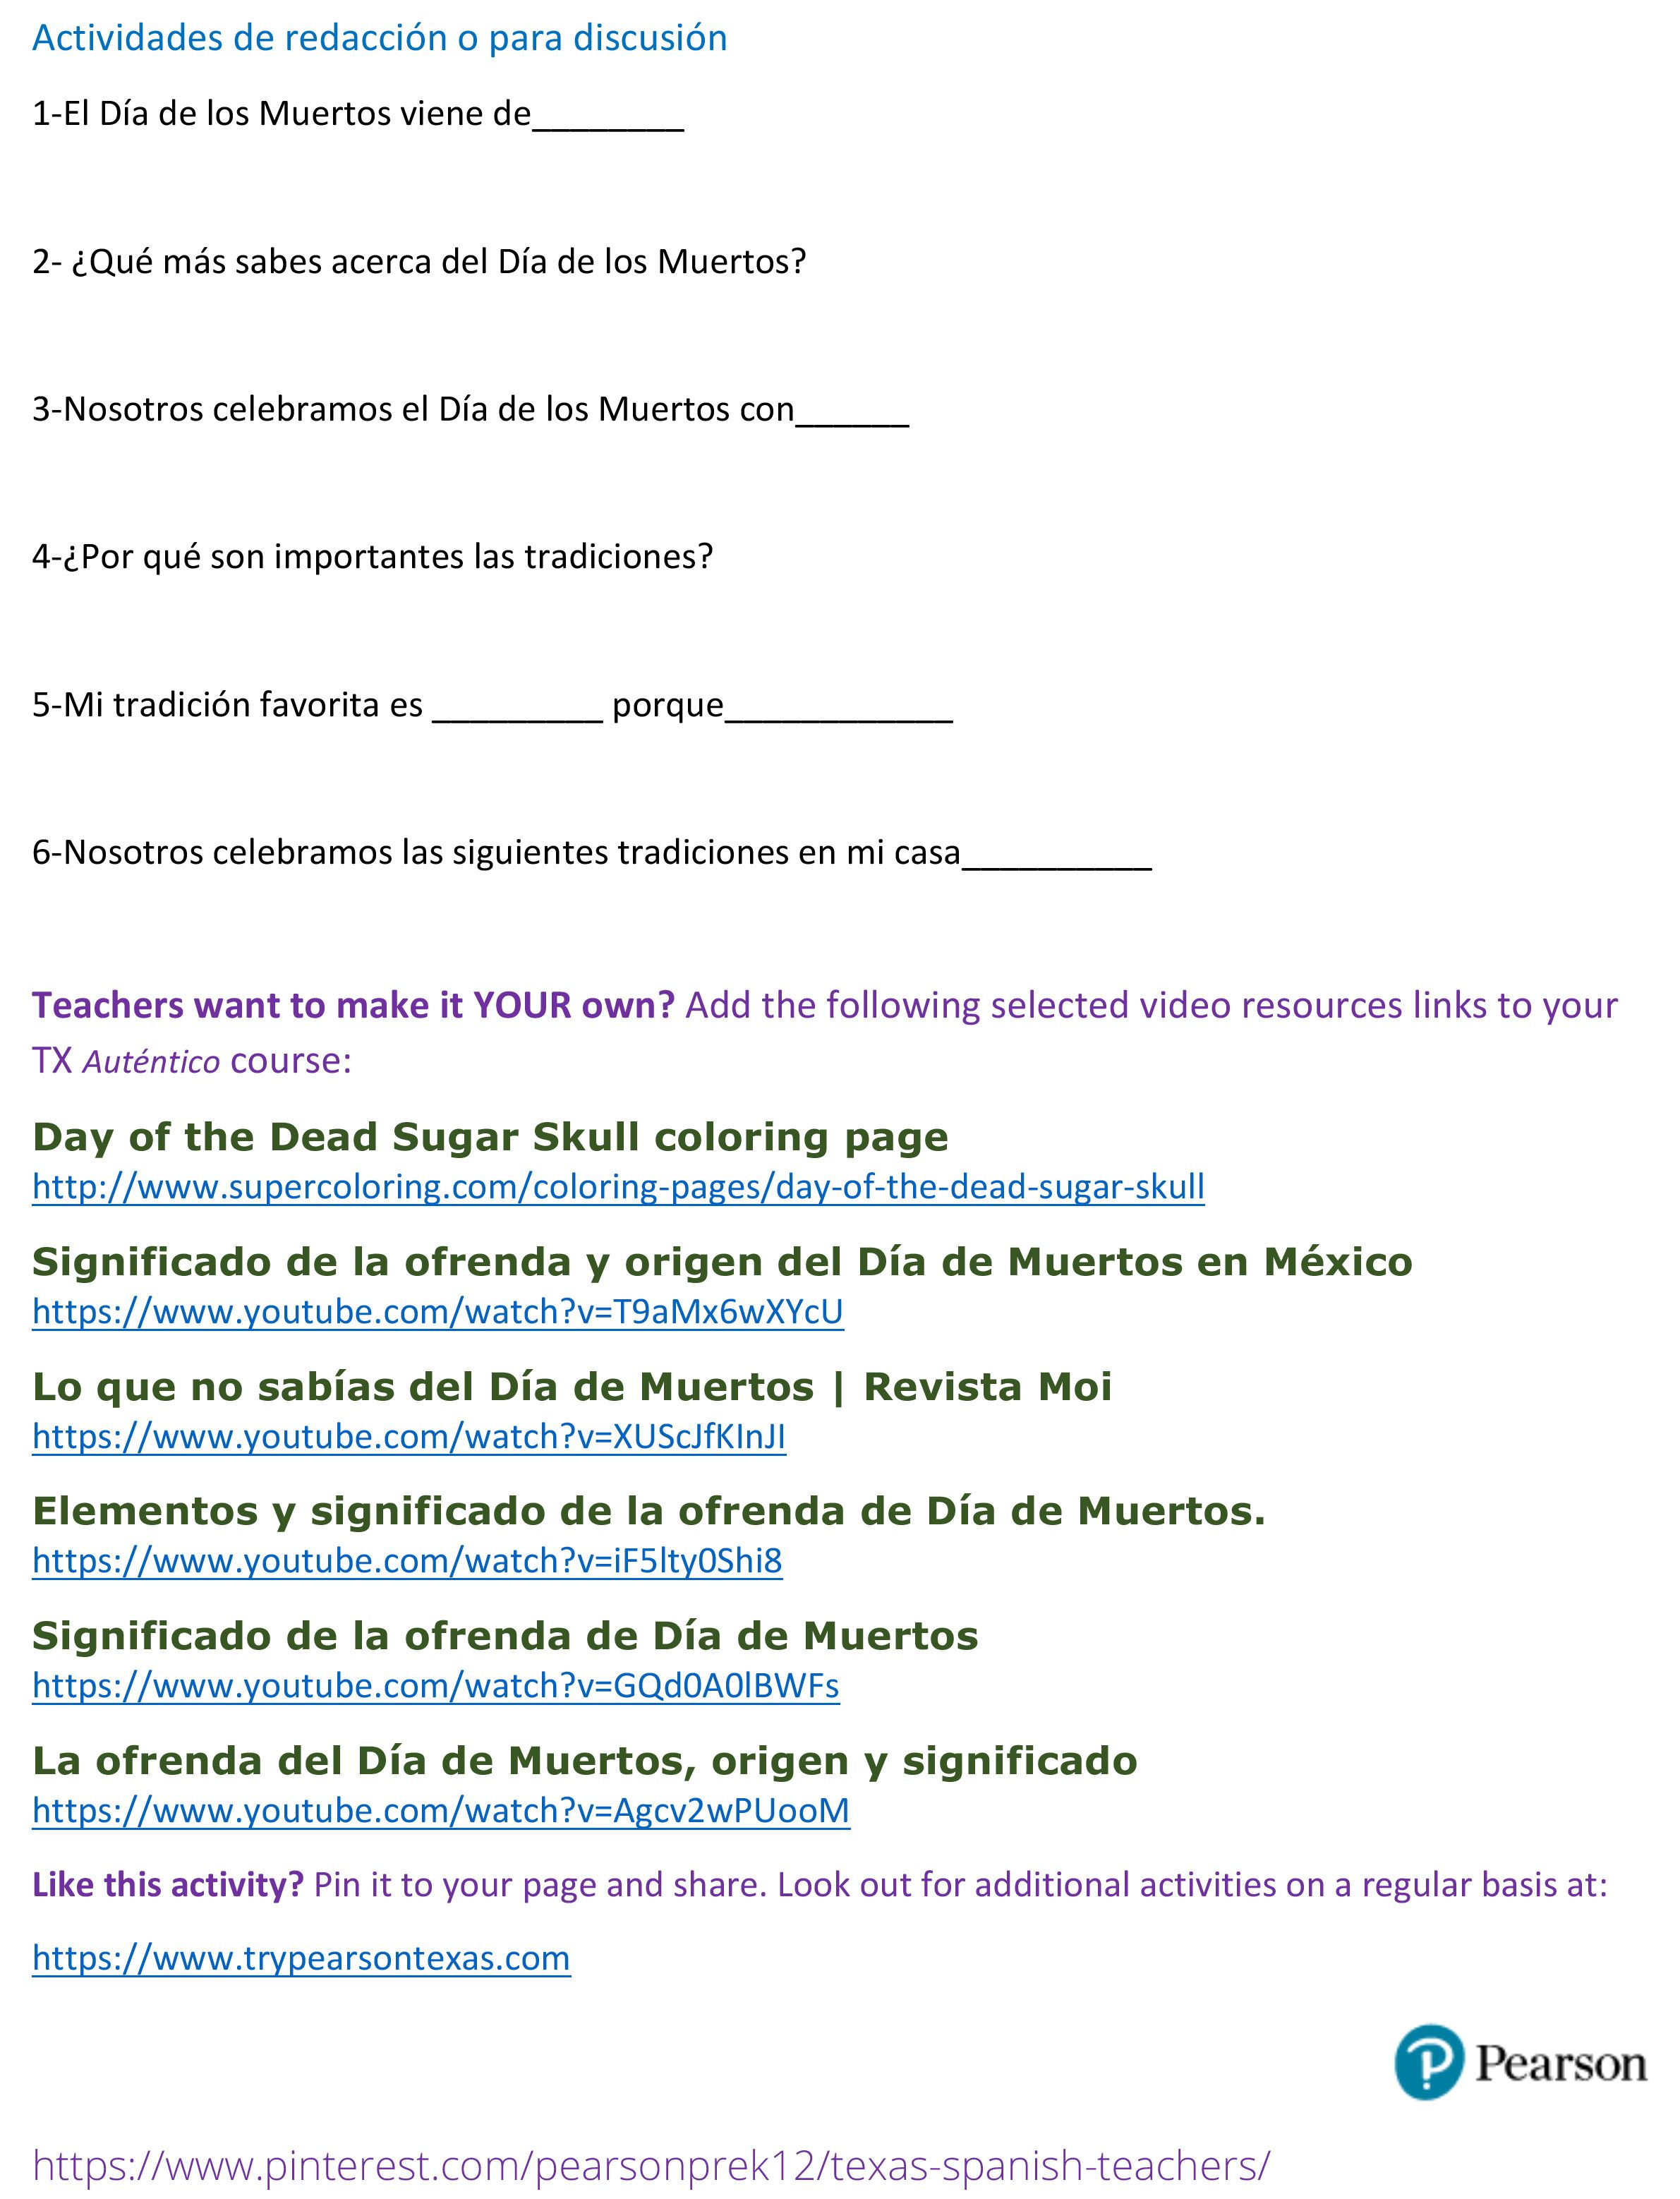 Uncategorized Pearson Editable Worksheets day of the dead activity page 2 pearson texas autentico spanish program tryautentico